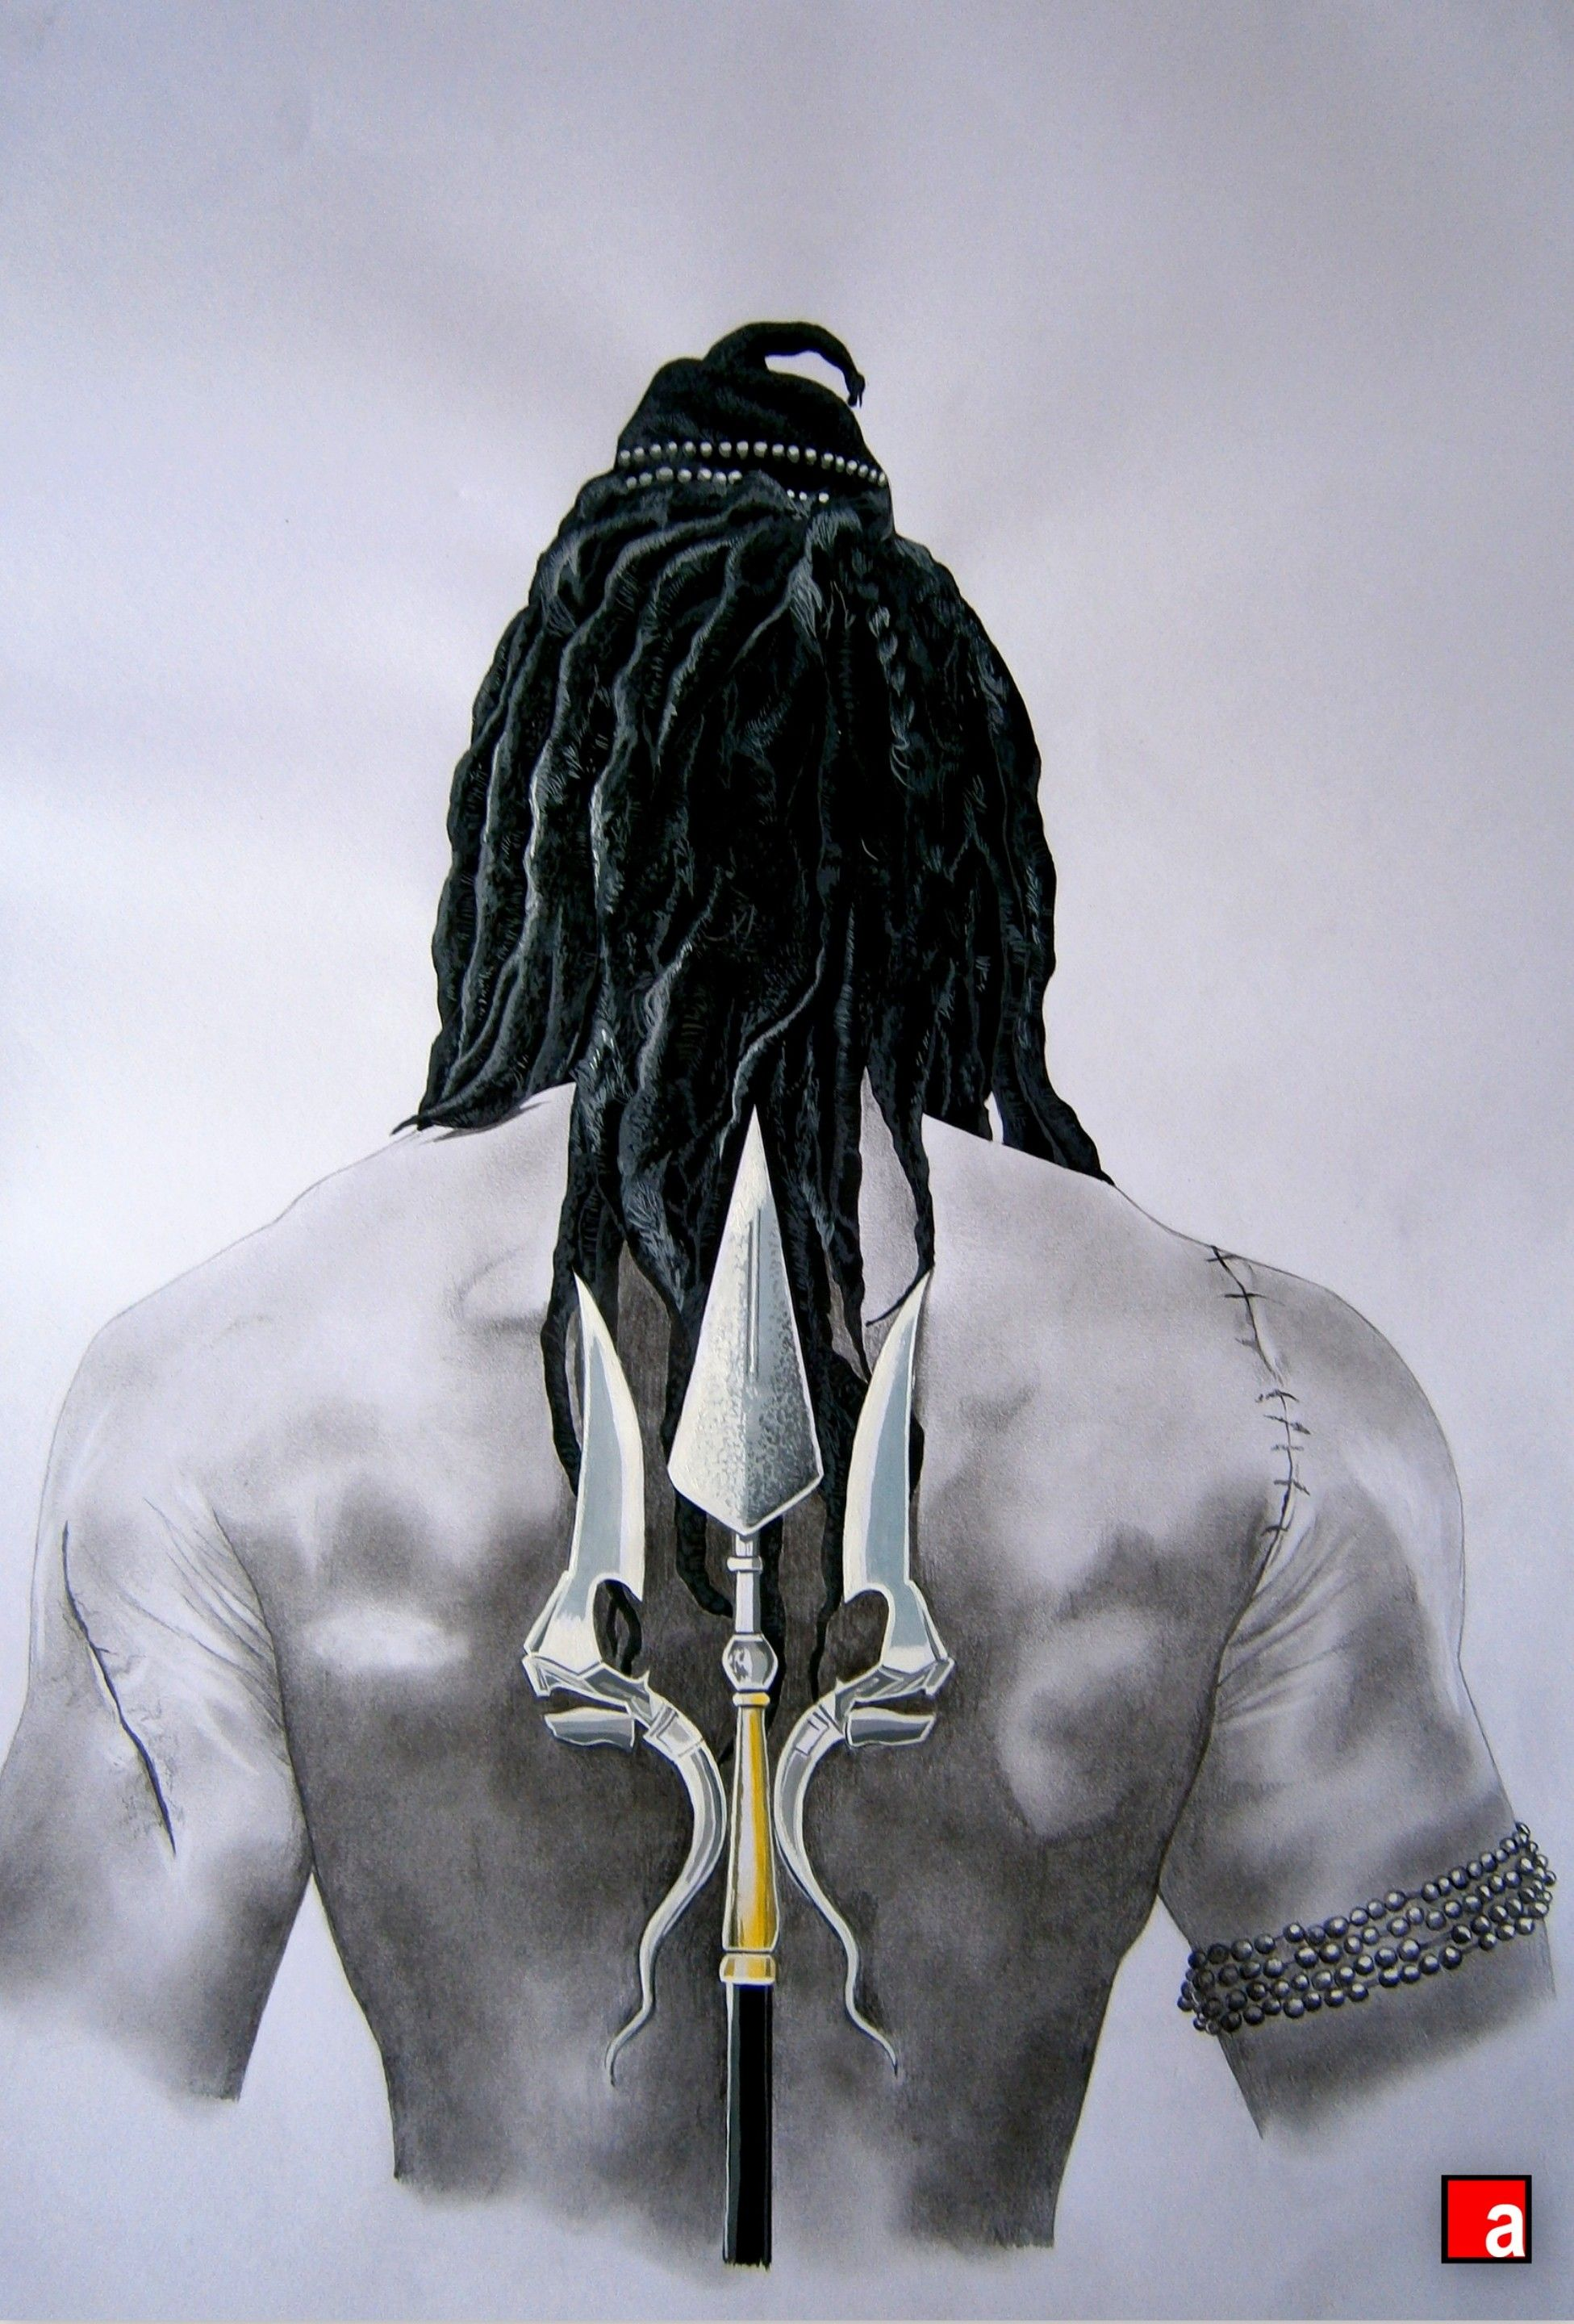 Lord shiva from the novel the immortals of meluha a pencil art done by me